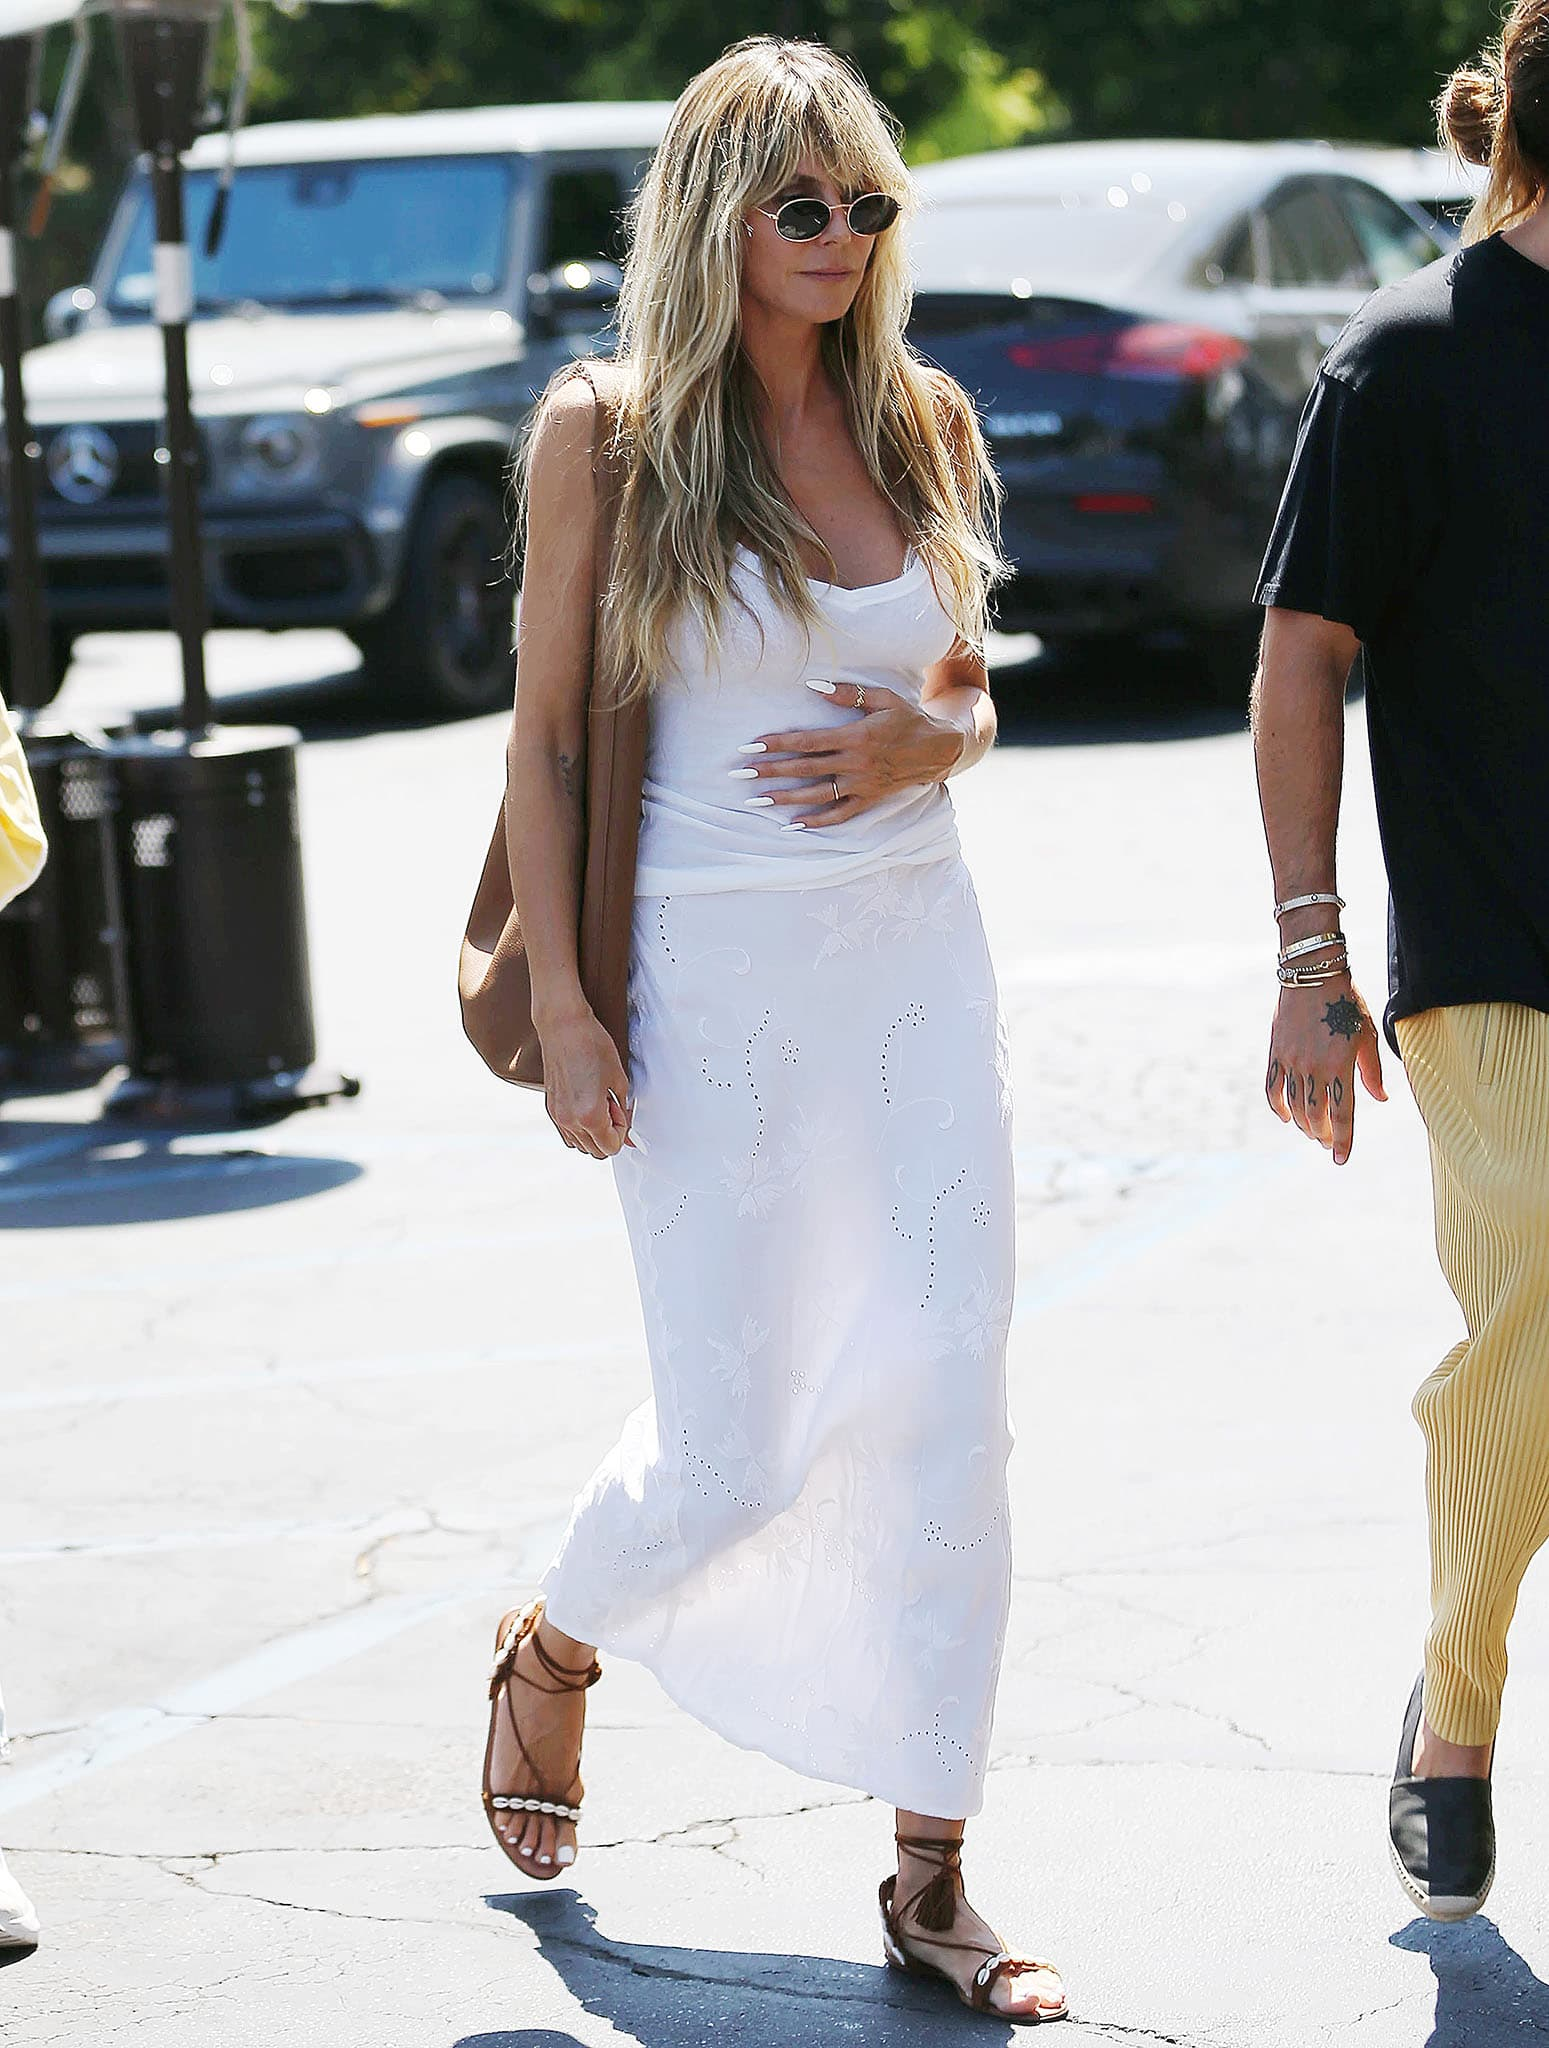 Heidi Klum showed a glimpse of her legs in a sheer white eyelet-detailed skirt and a white tank top